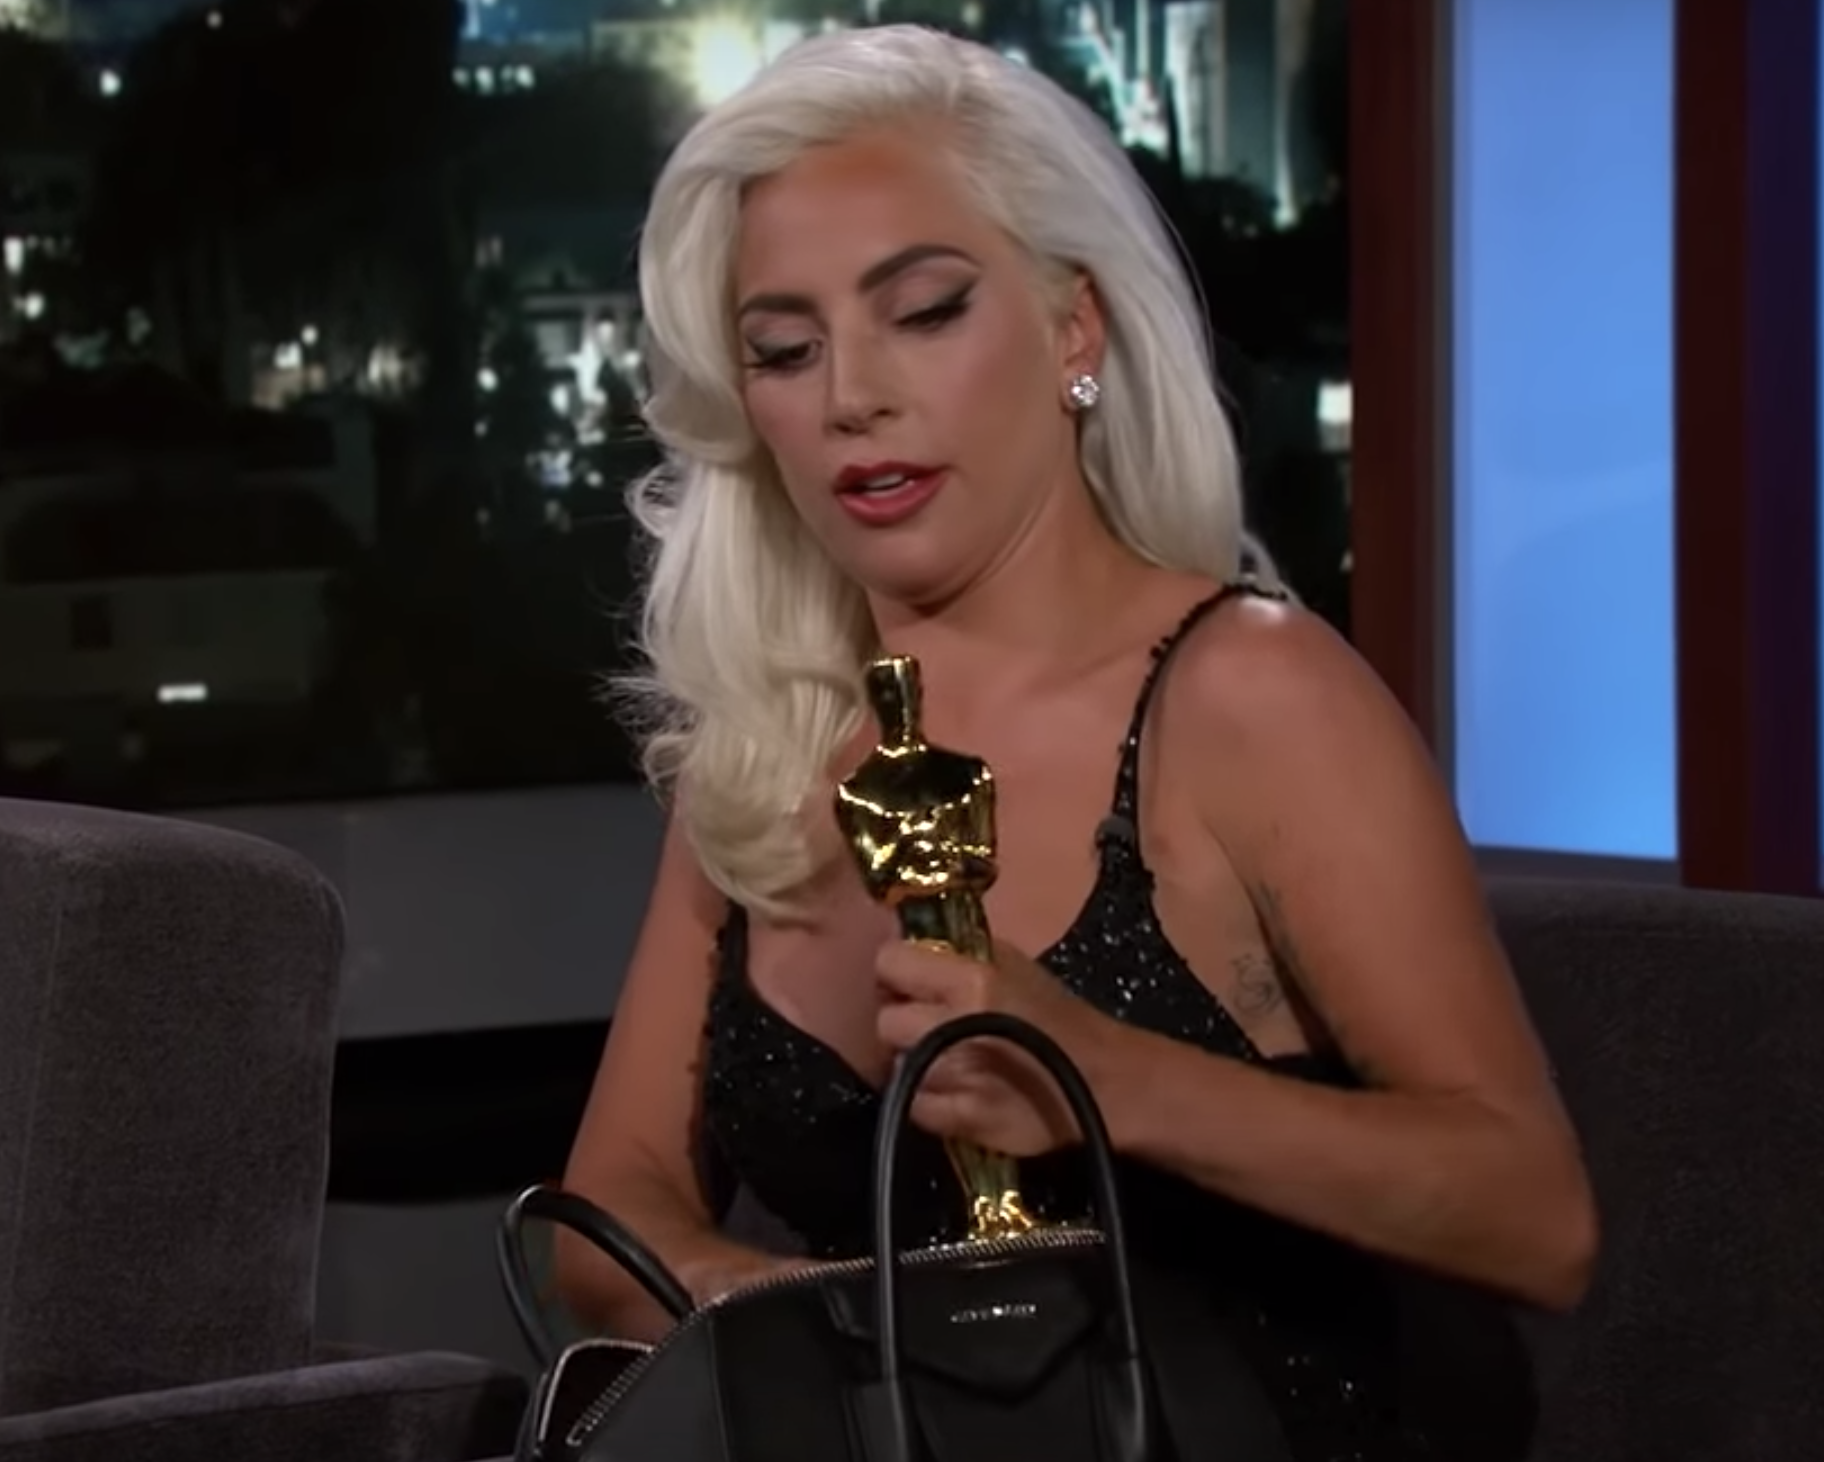 Lady Gaga on Jimmy Kimmel Live with her Oscar inside her Givenchy Antigona